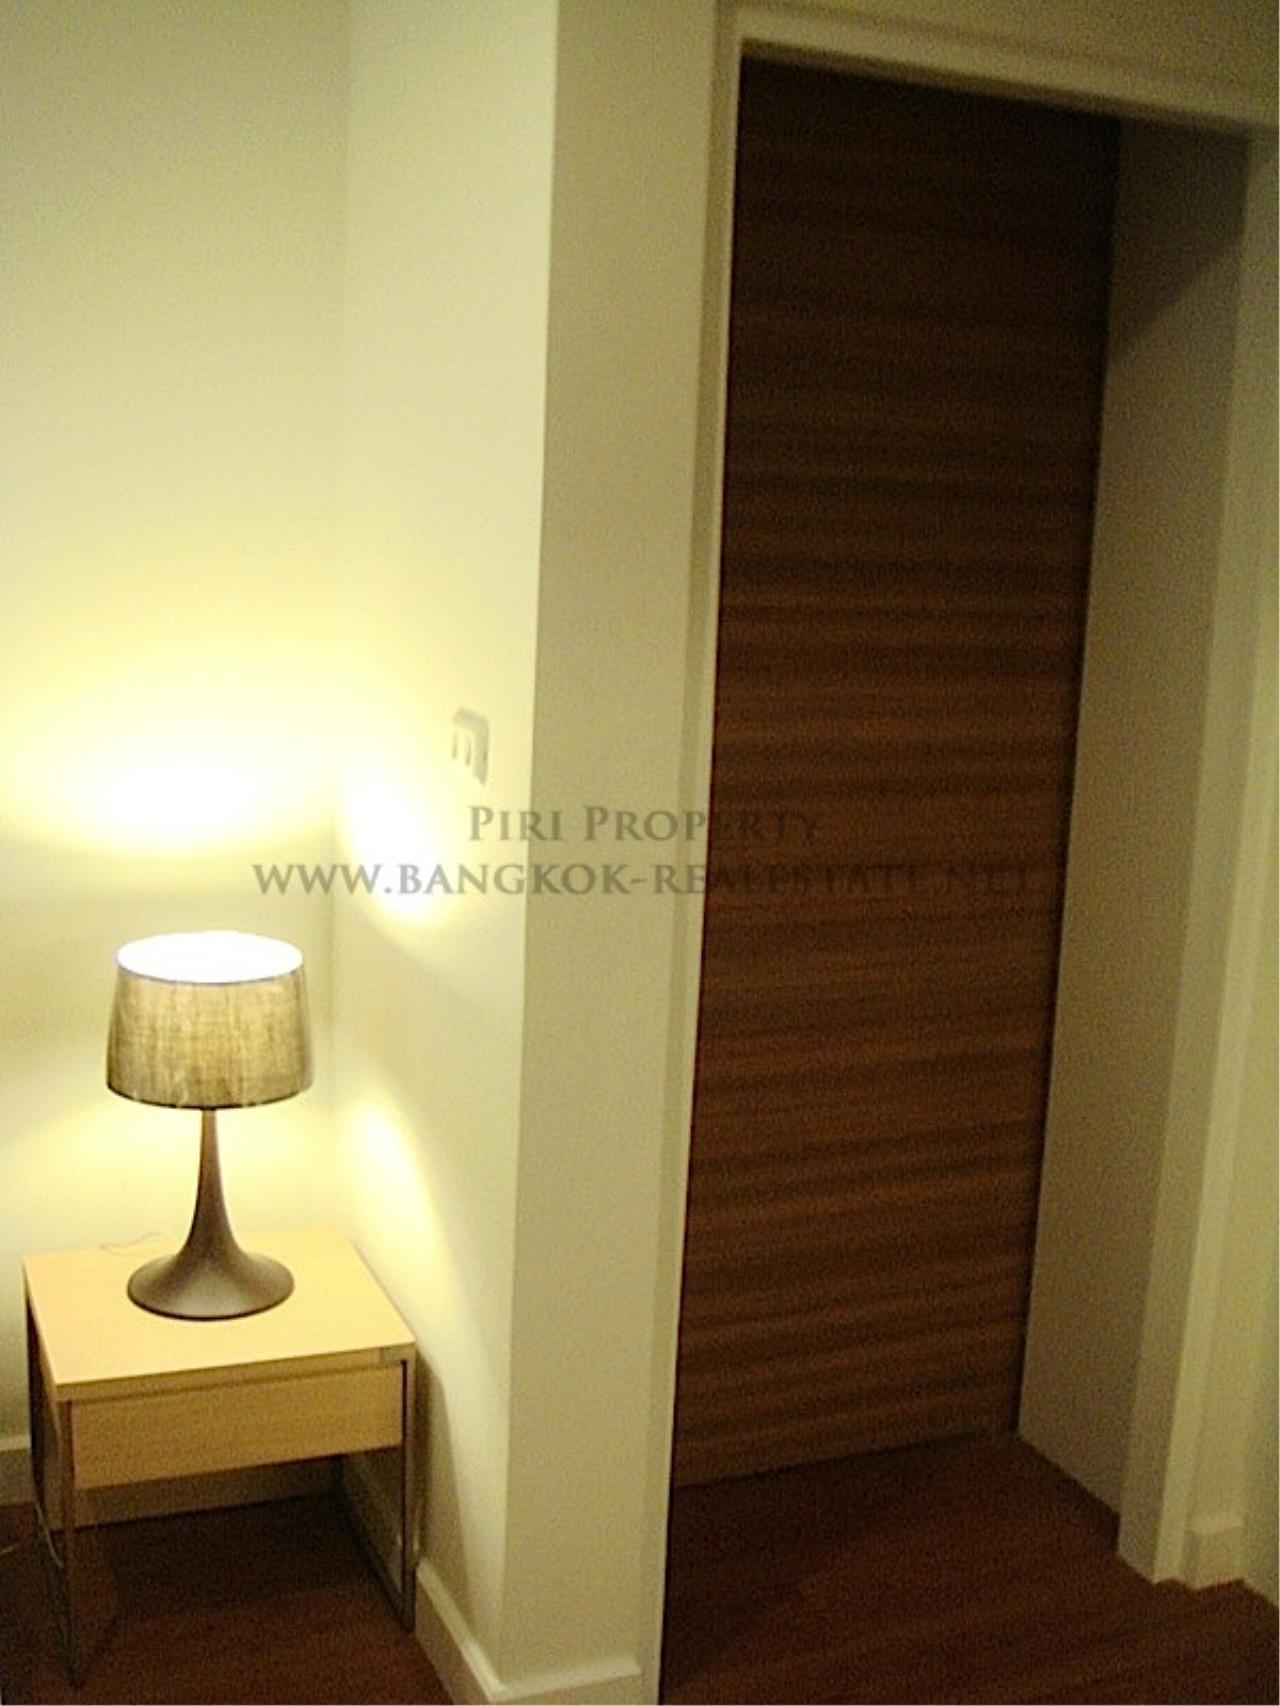 Piri Property Agency's Nicely Furnished One Bedroom Unit - Condo One X 2